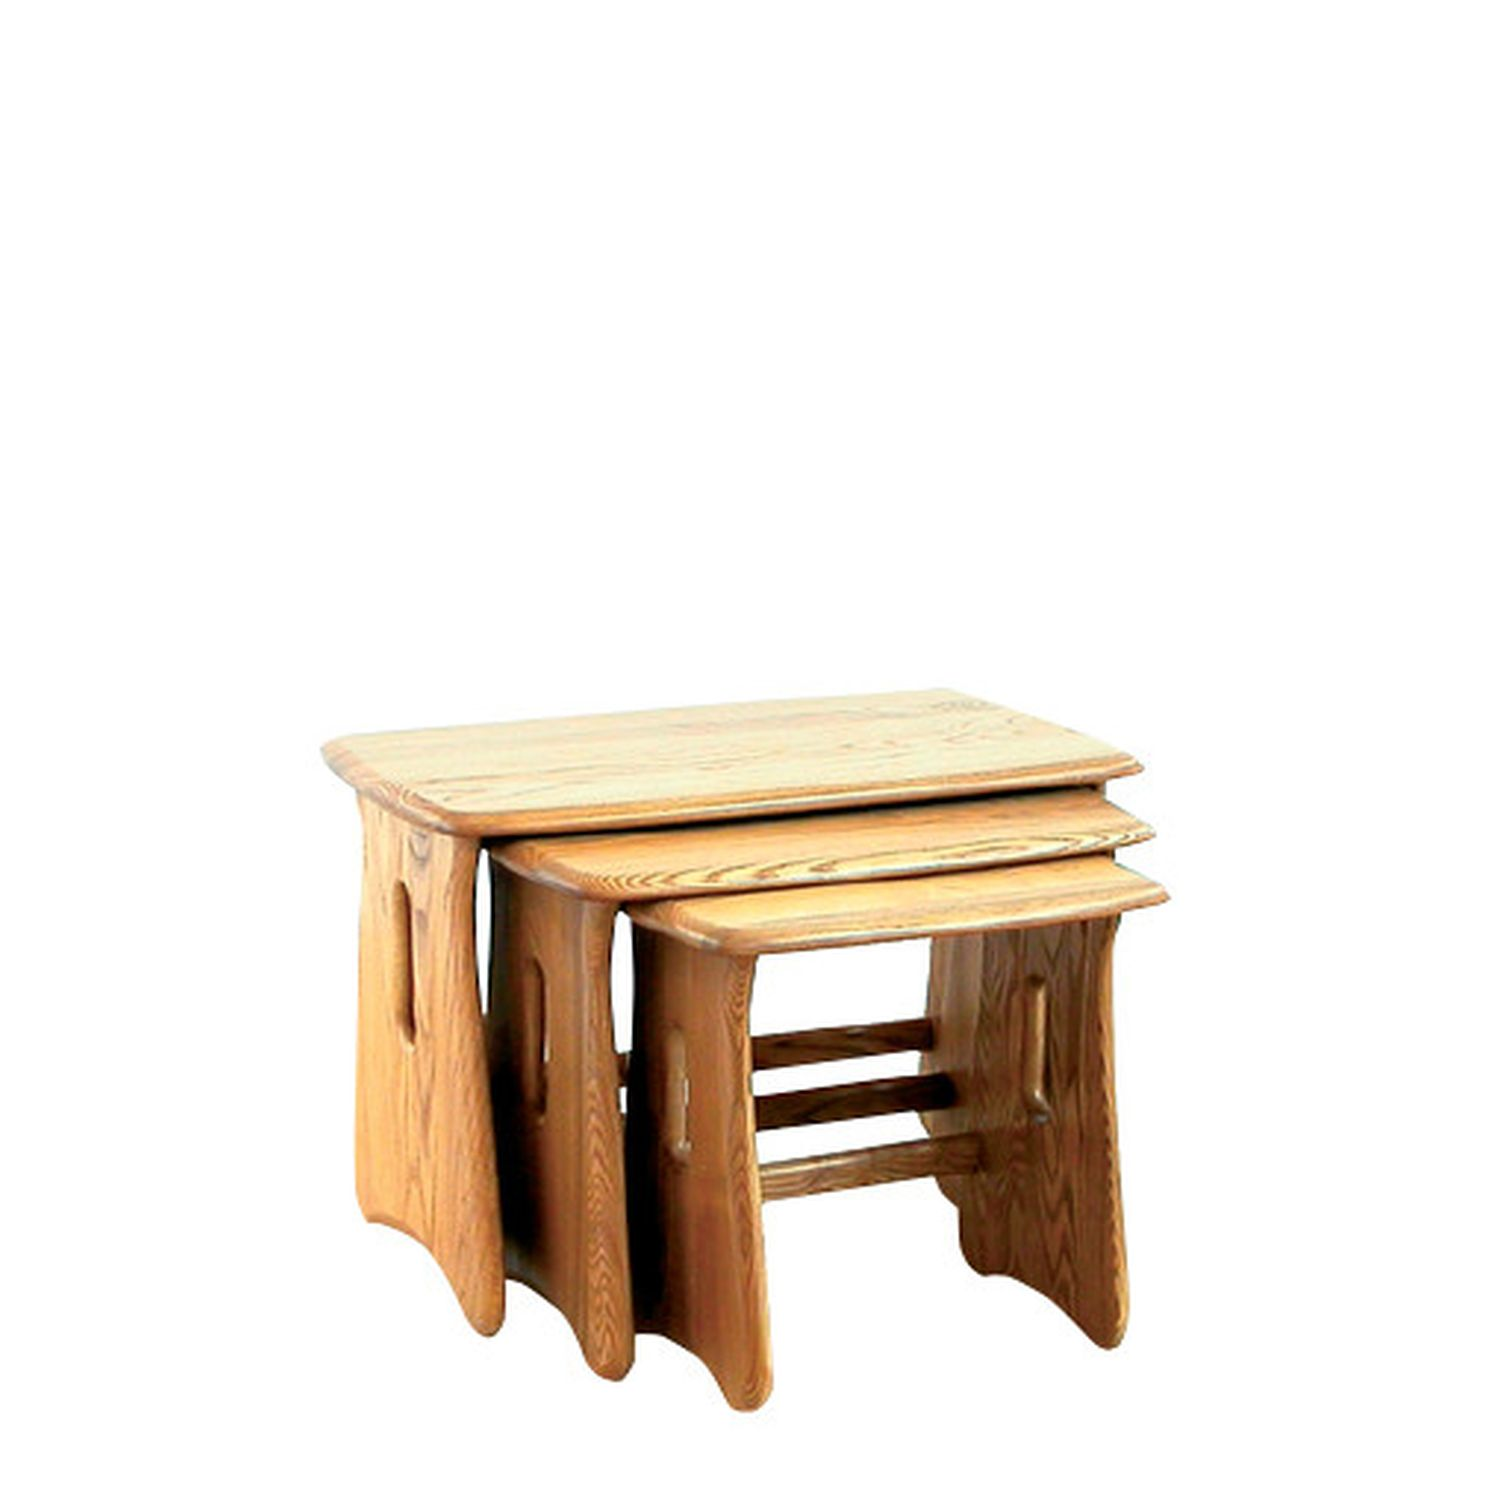 Image of Ercol Windsor Nest of Tables